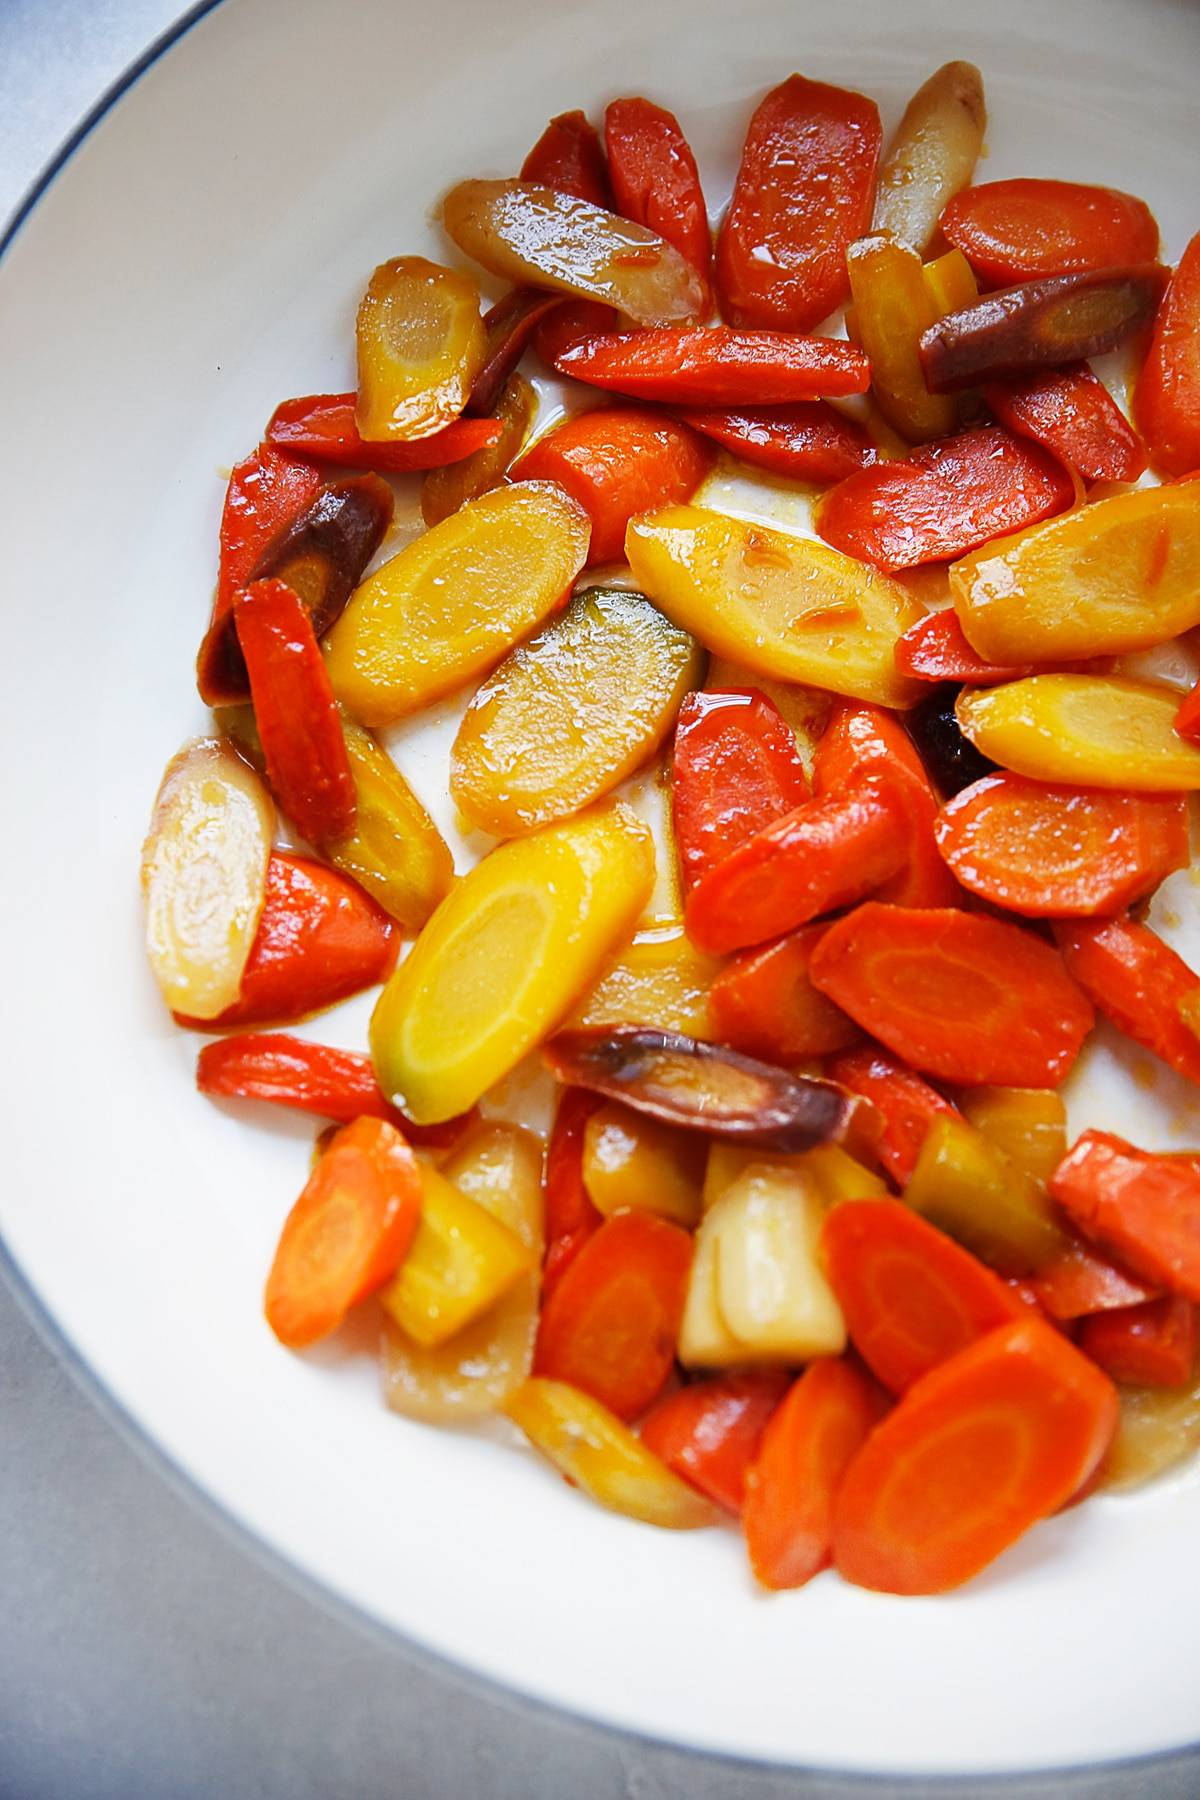 Honey glazed carrots in a pan